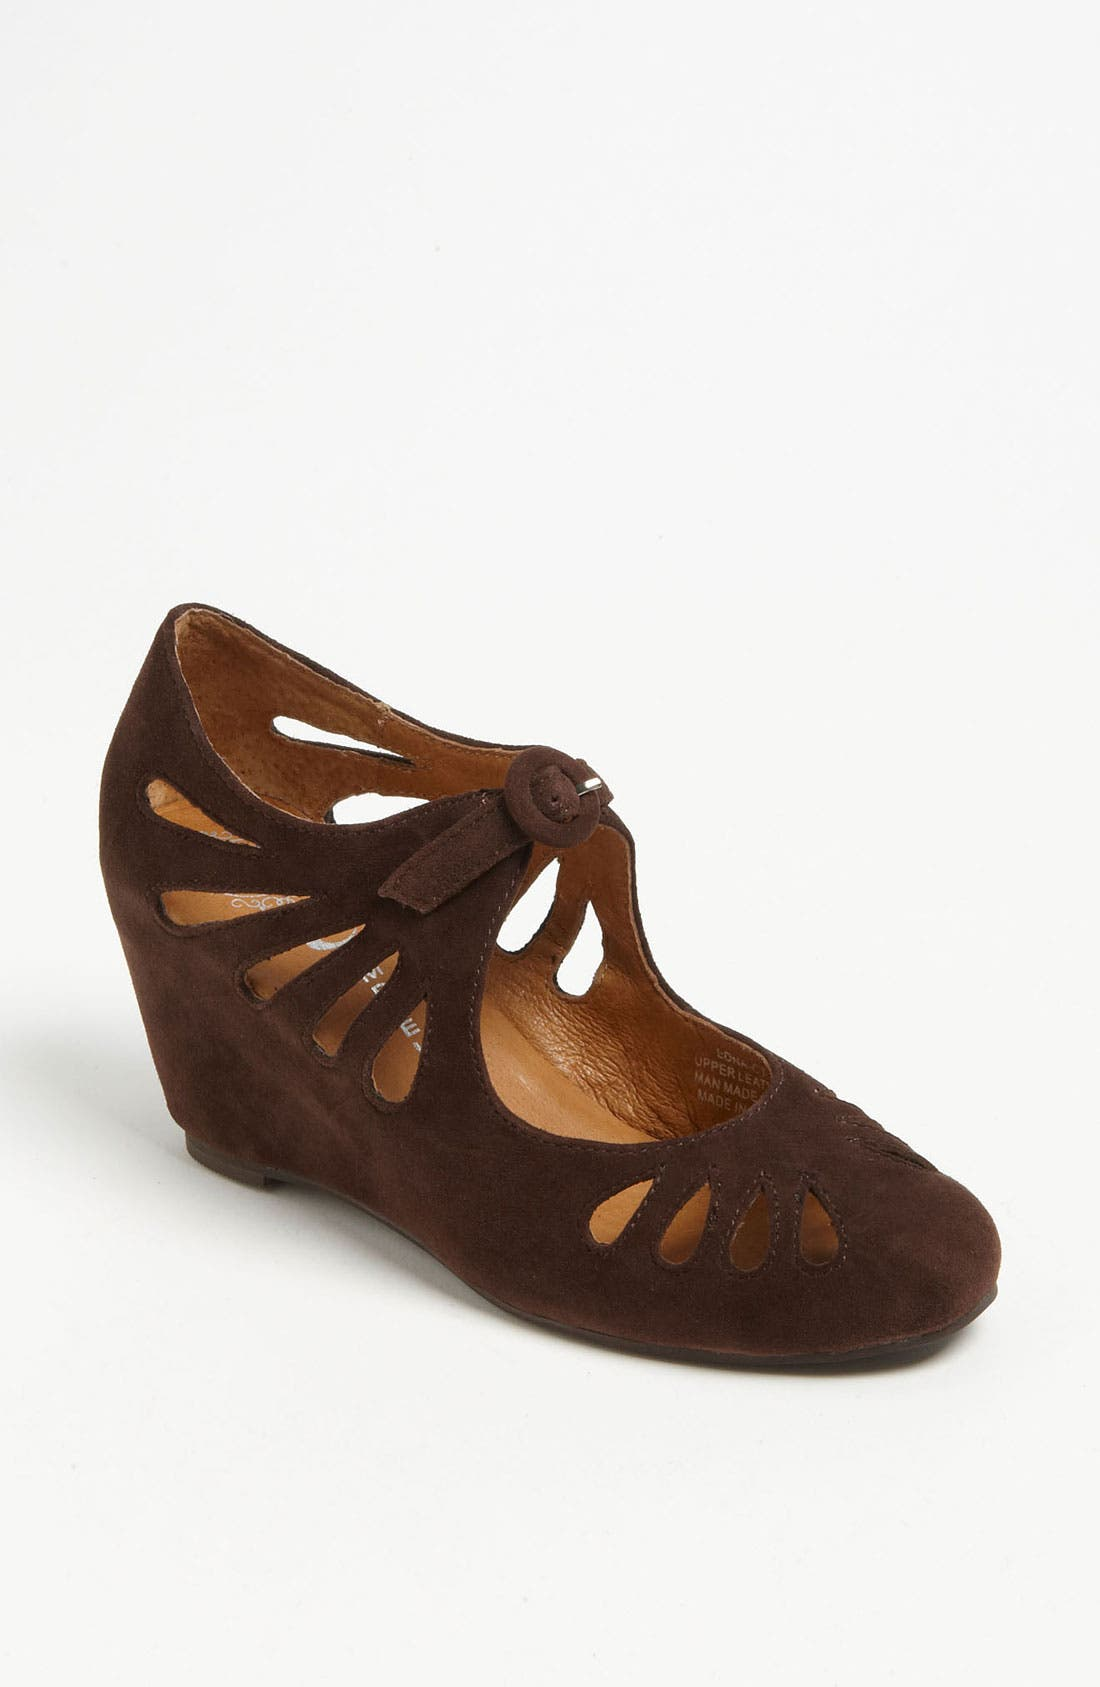 Alternate Image 1 Selected - Jeffrey Campbell 'Edna' Wedge